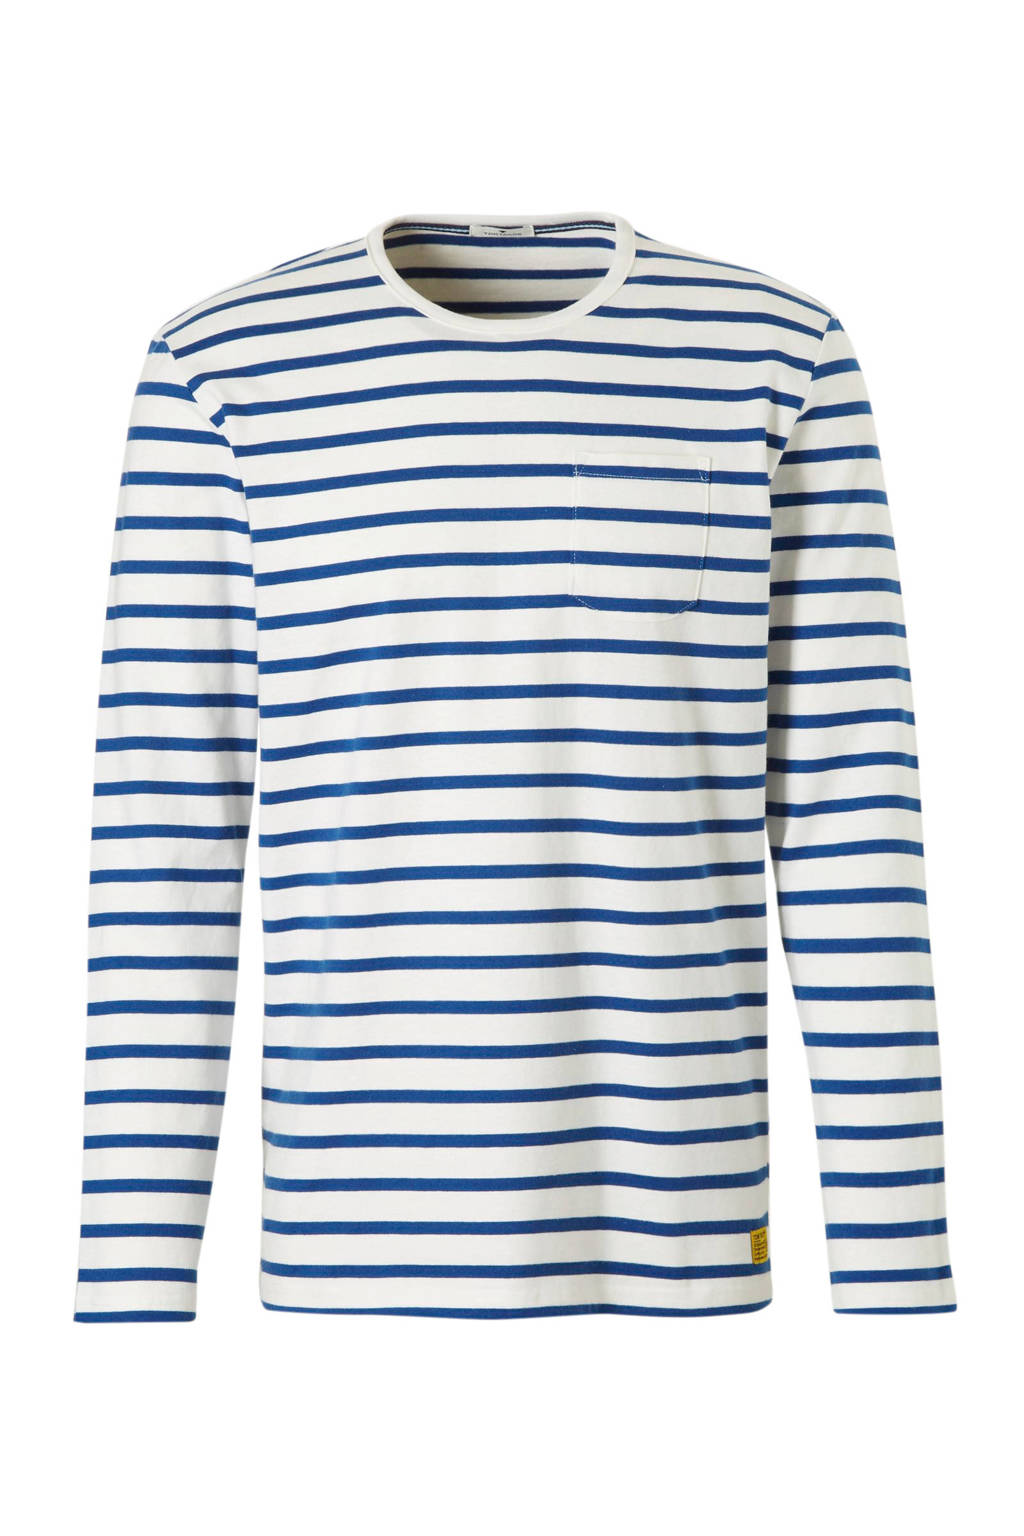 Tom Tailor gestreept T-shirt blauw, Blauw/wit